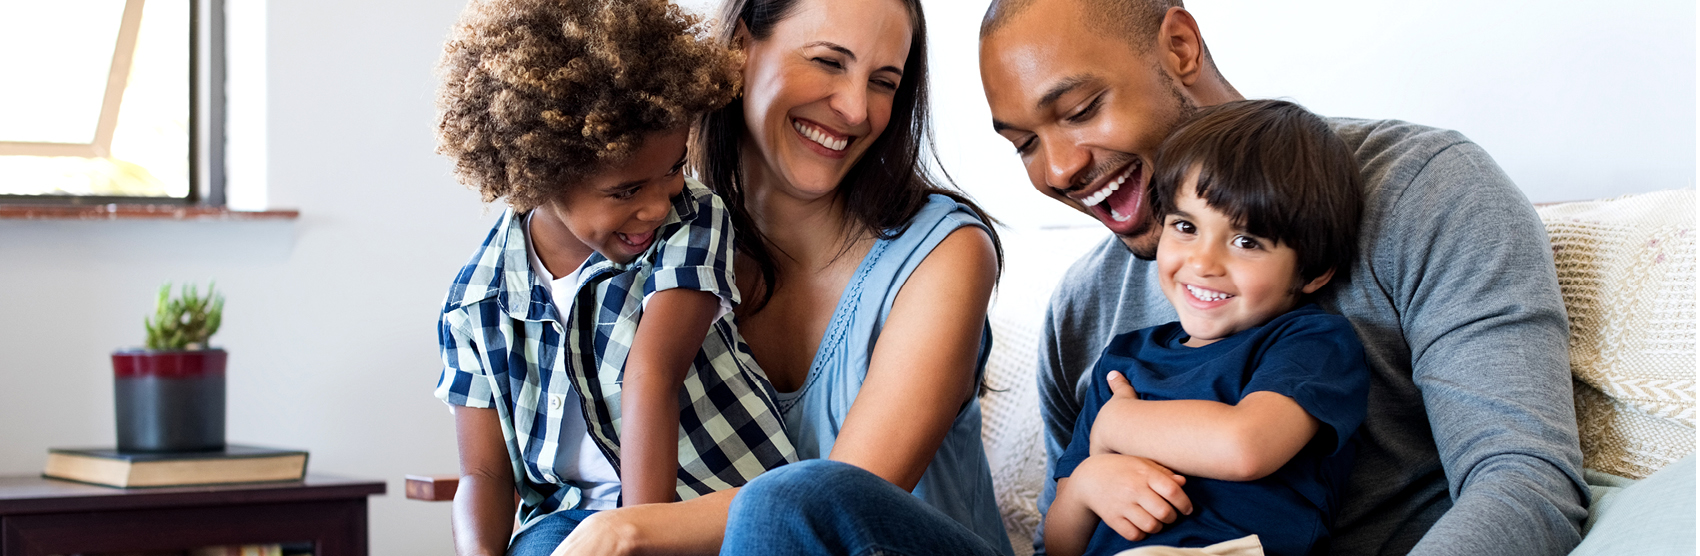 Family having fun and laughing at home